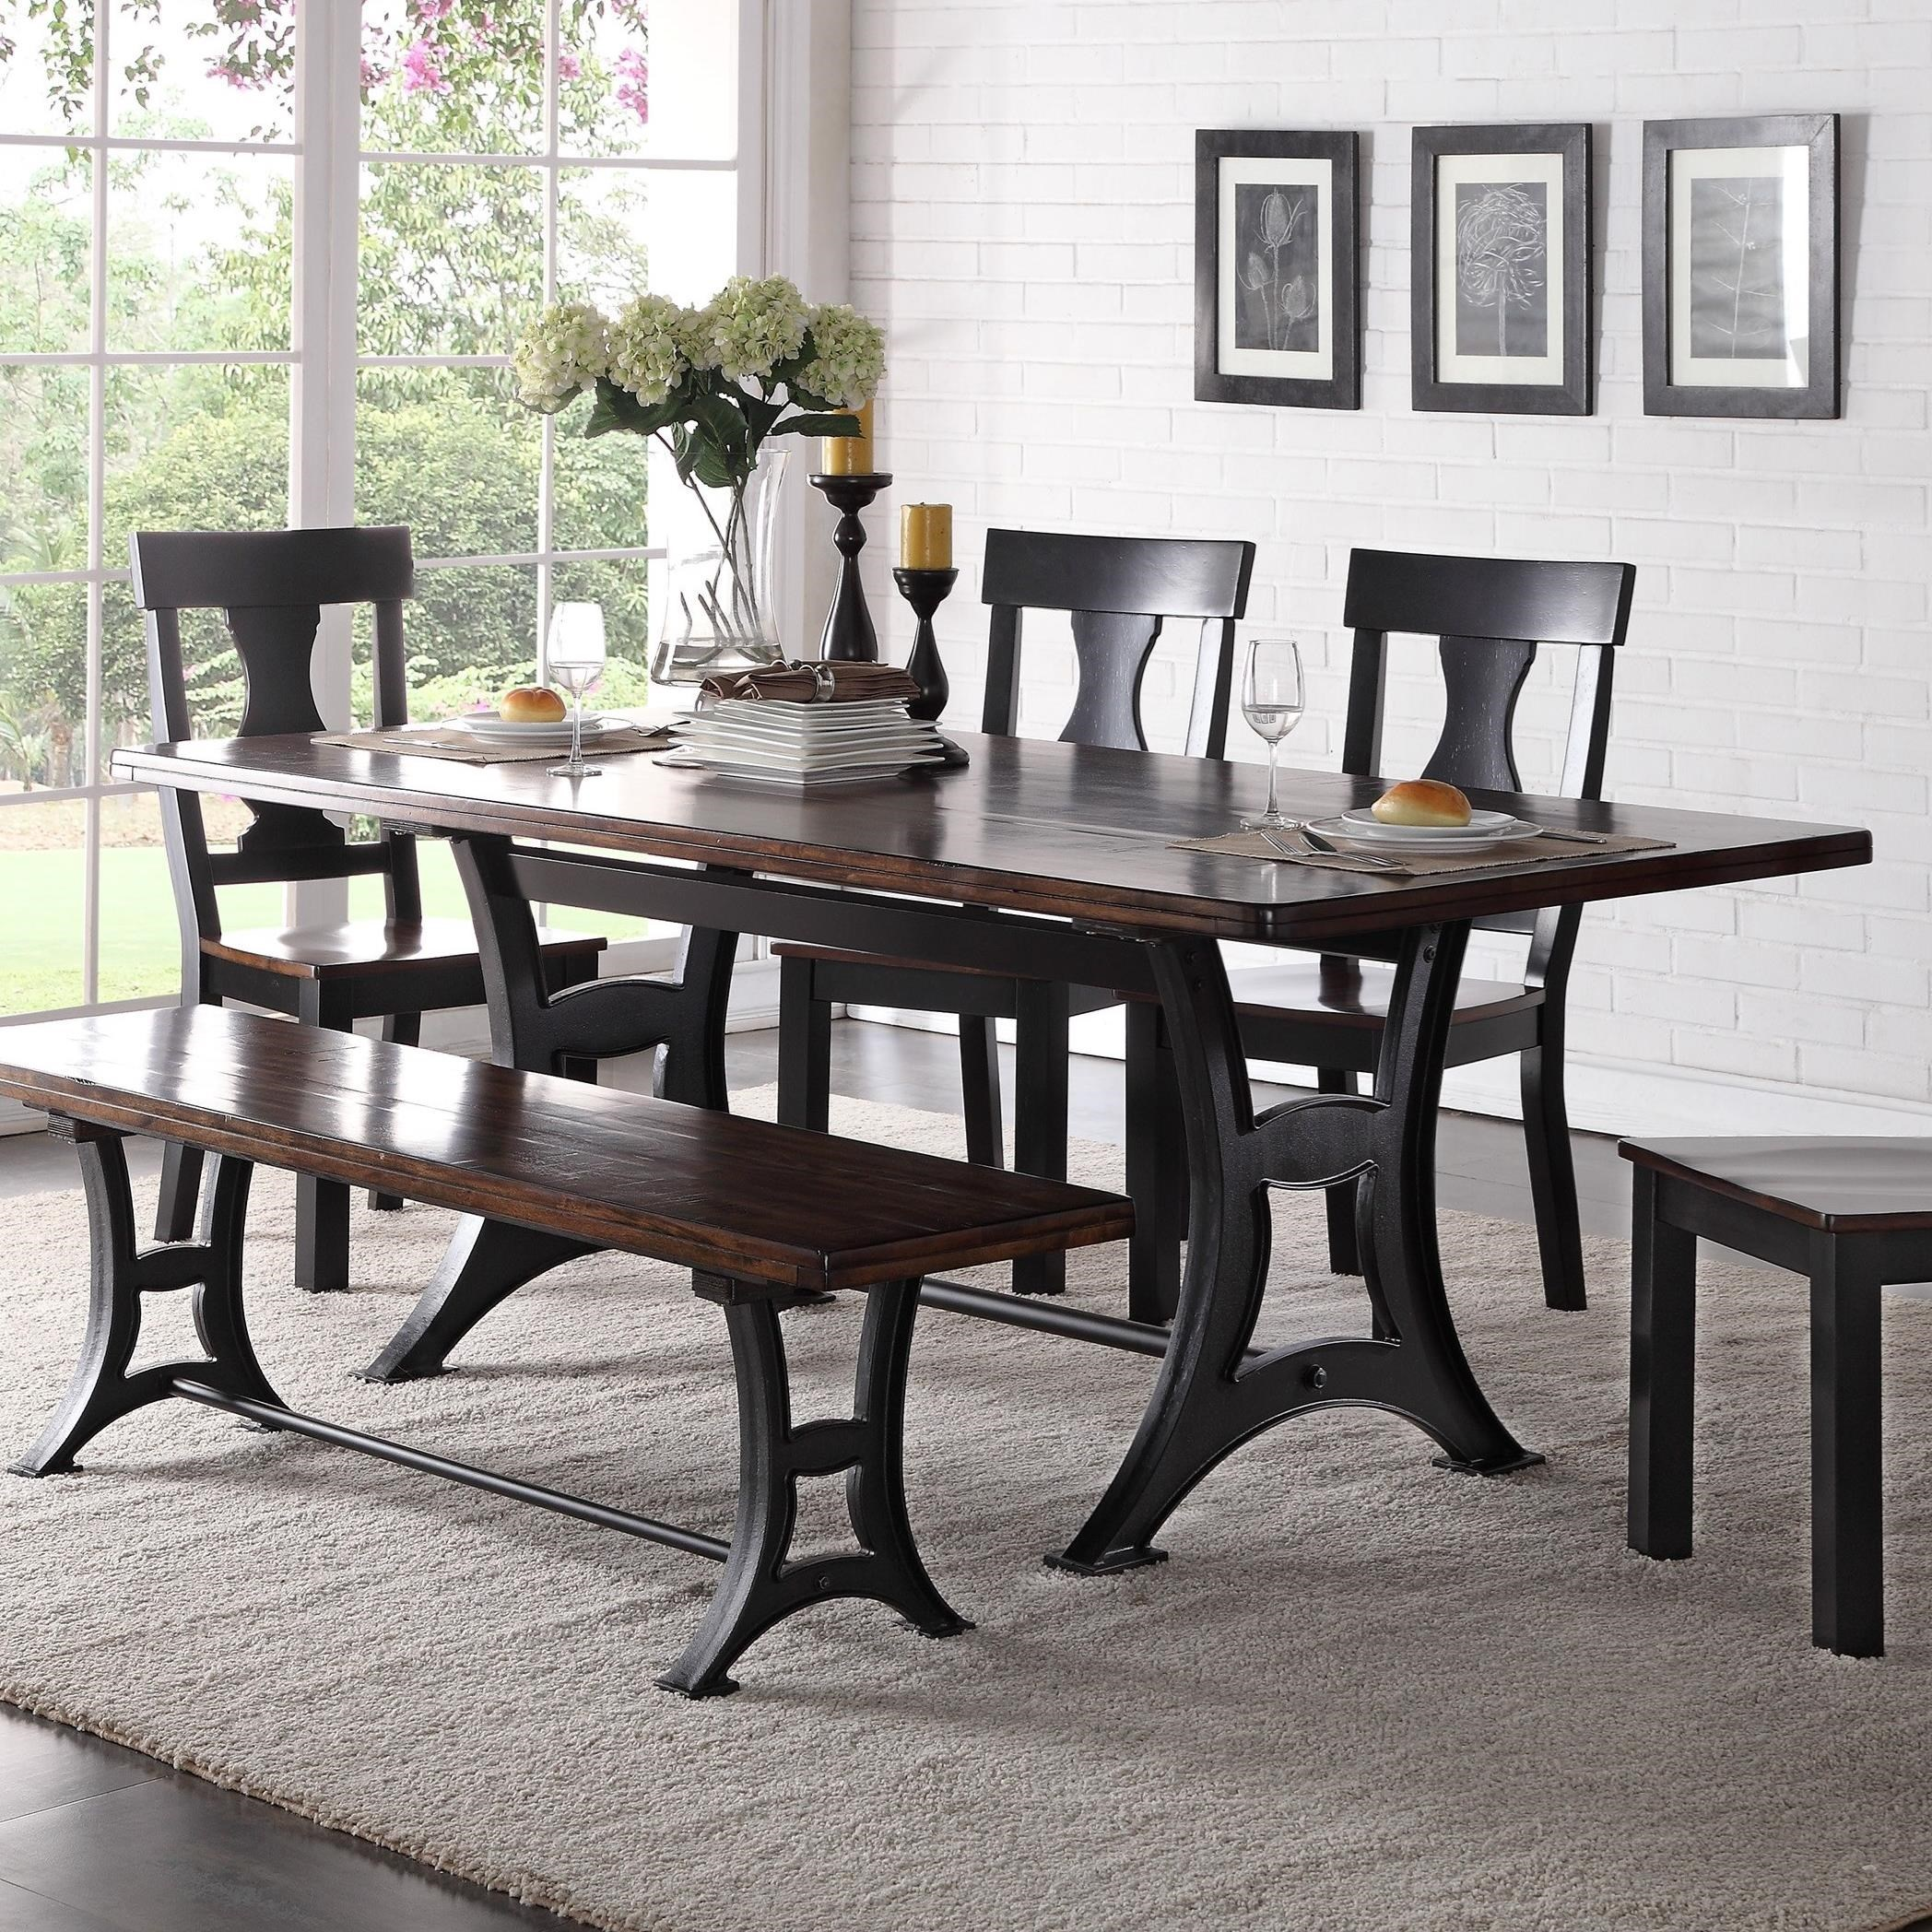 industrial dining table. Crown Mark Astor Industrial Dining Table With Trestle Base And Rustic Top L